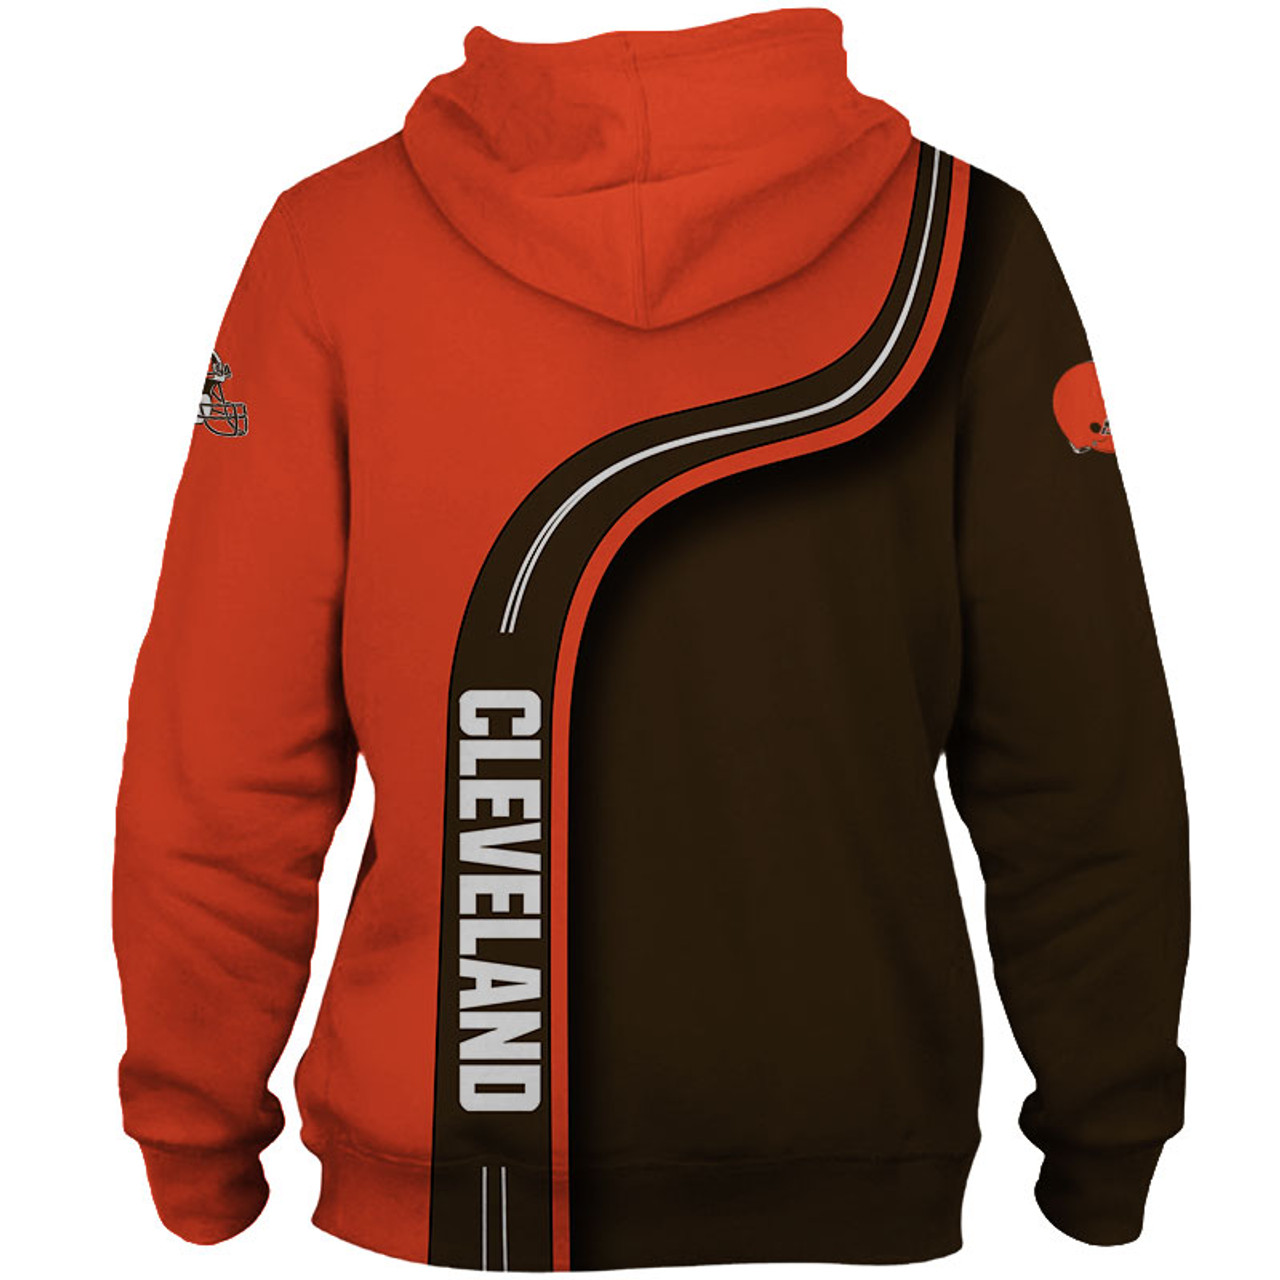 **(OFFICIAL-N.F.L.CLEVELAND-BROWNS-FASHION-PULLOVER-TEAM-HOODIES/CUSTOM-3D-GRAPHIC-PRINTED-DETAILED-DOUBLE-SIDED-DESIGN/CLASSIC-OFFICIAL-BROWNS-TEAM-LOGOS & OFFICIAL-BROWNS-TEAM-COLORS/WARM-PREMIUM-OFFICIAL-N.F.L.BROWNS-FAN-TEAM-PULLOVER-HOODIES)**